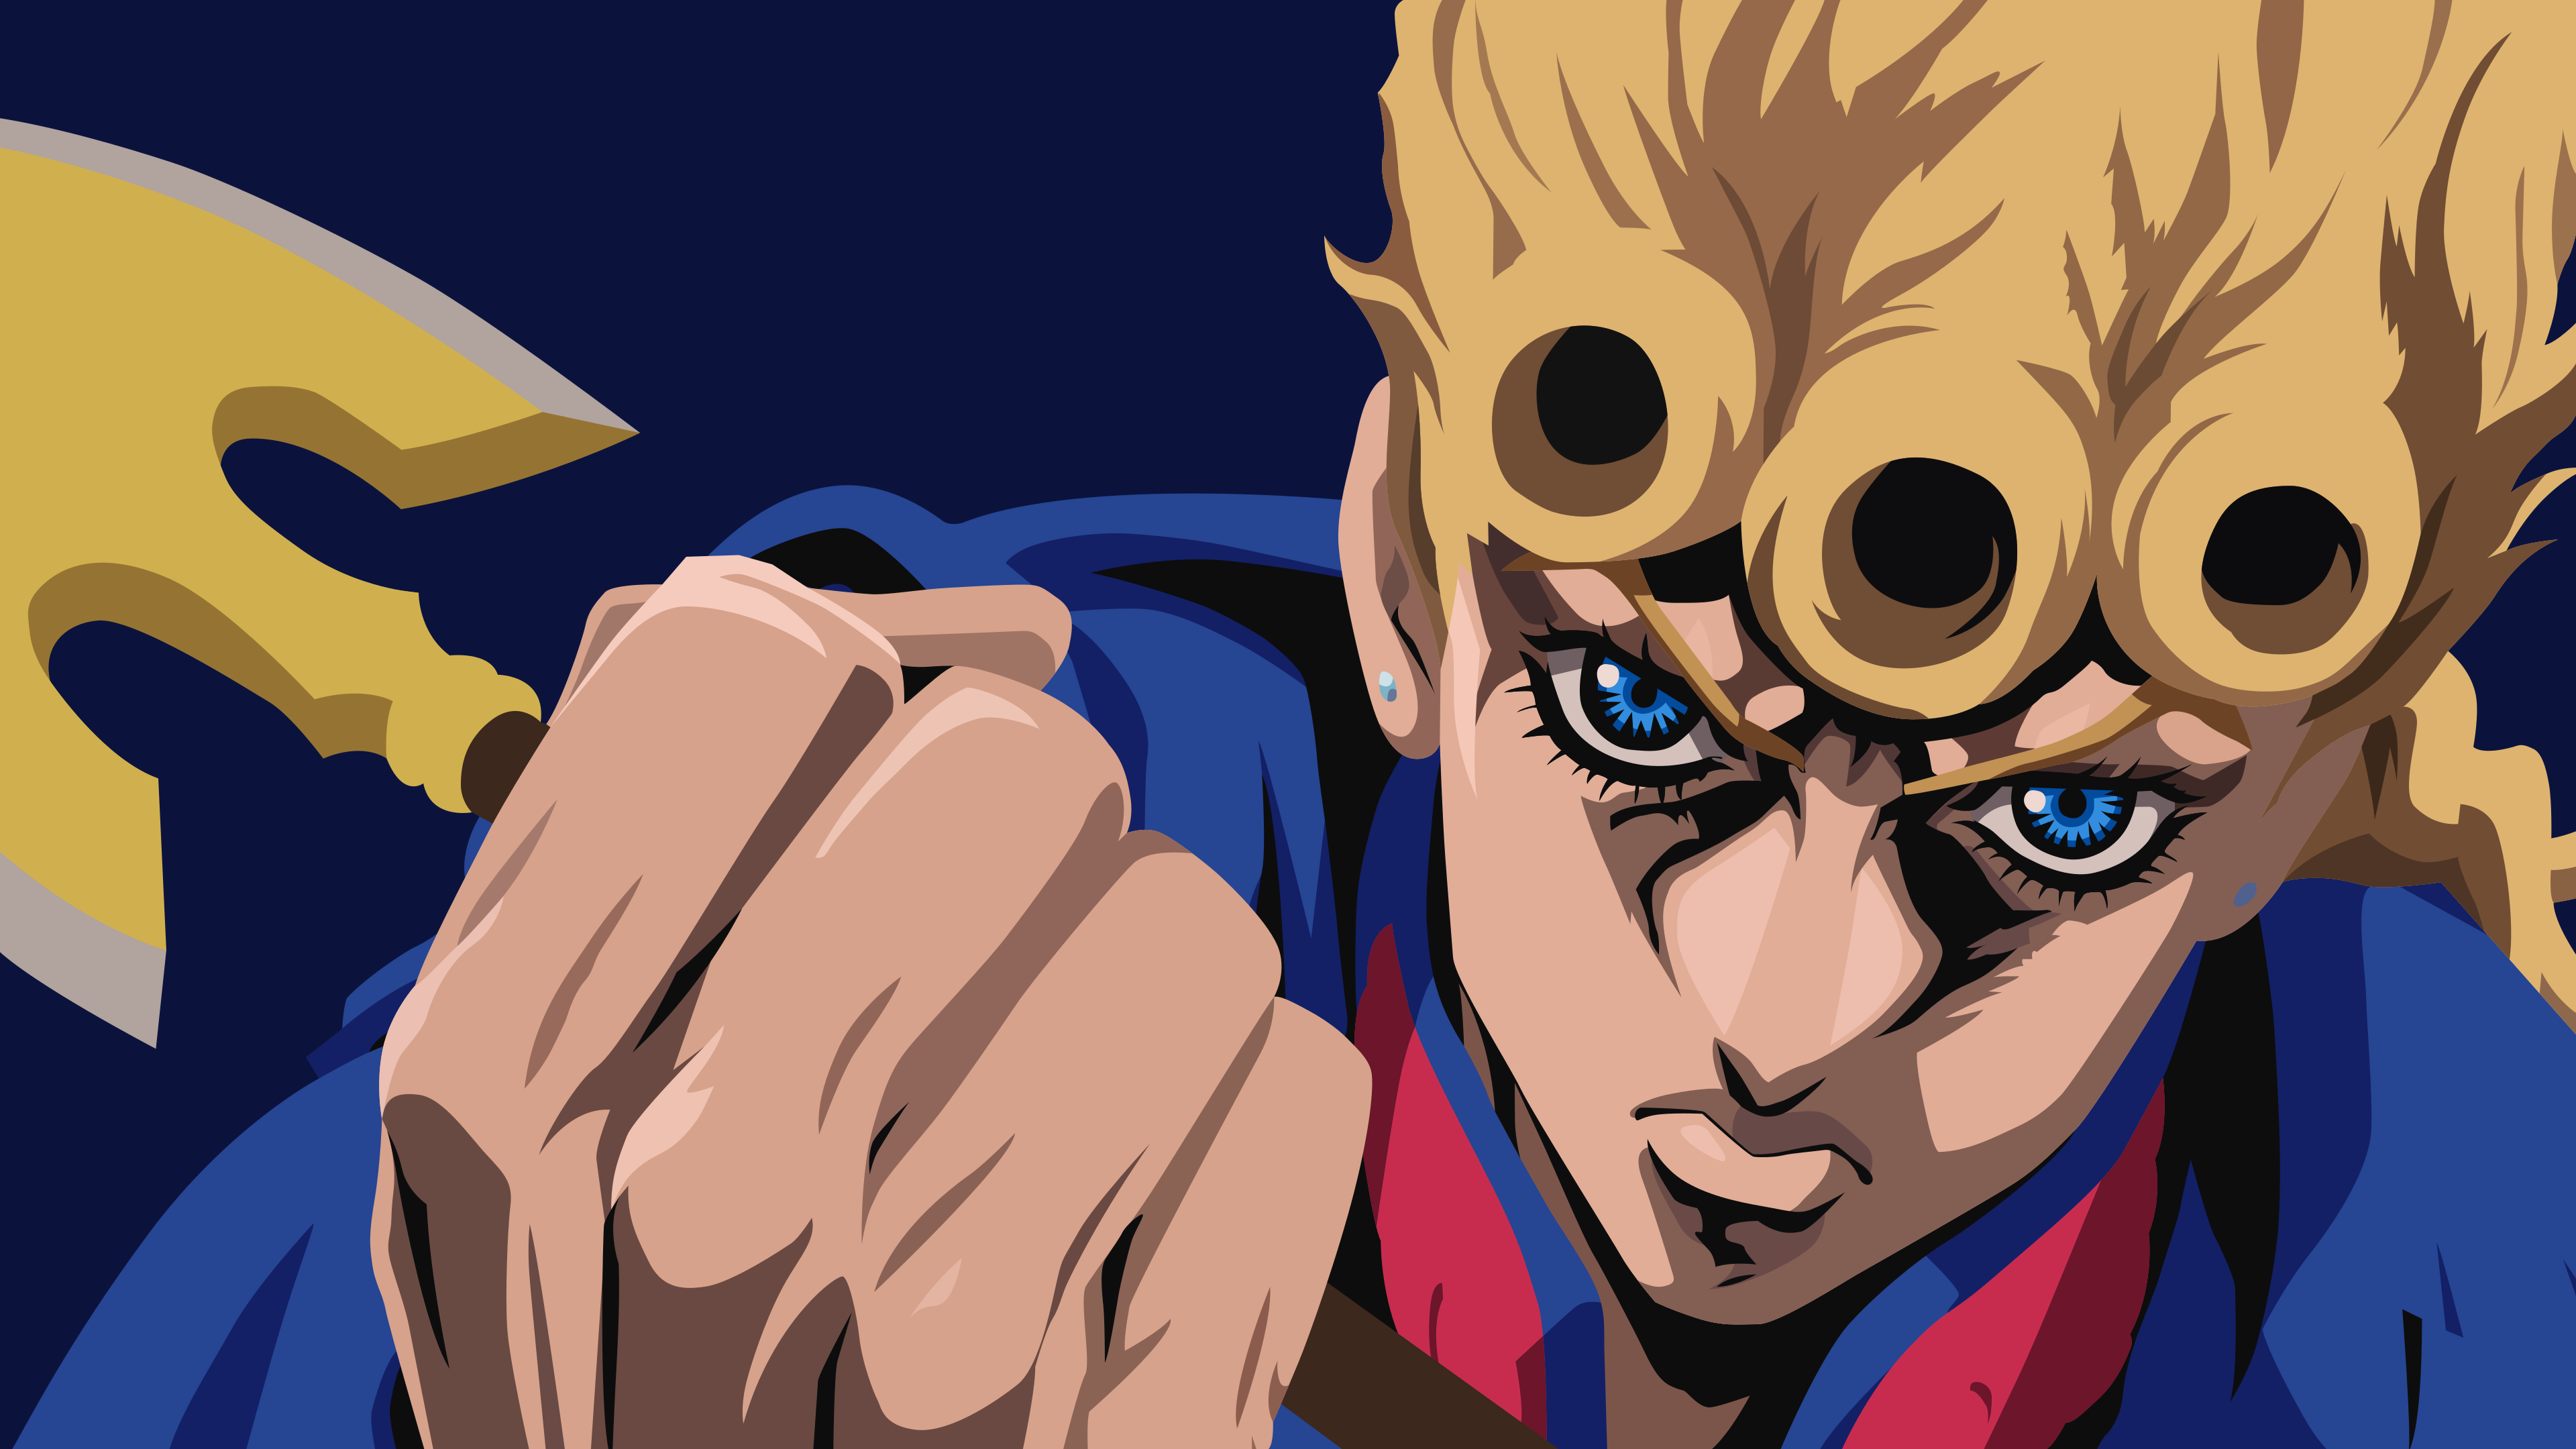 Giorno Giovanna Holding The Stand Arrow By Quasarbright On Deviantart It looks like you're using artstation from great britain. giorno giovanna holding the stand arrow